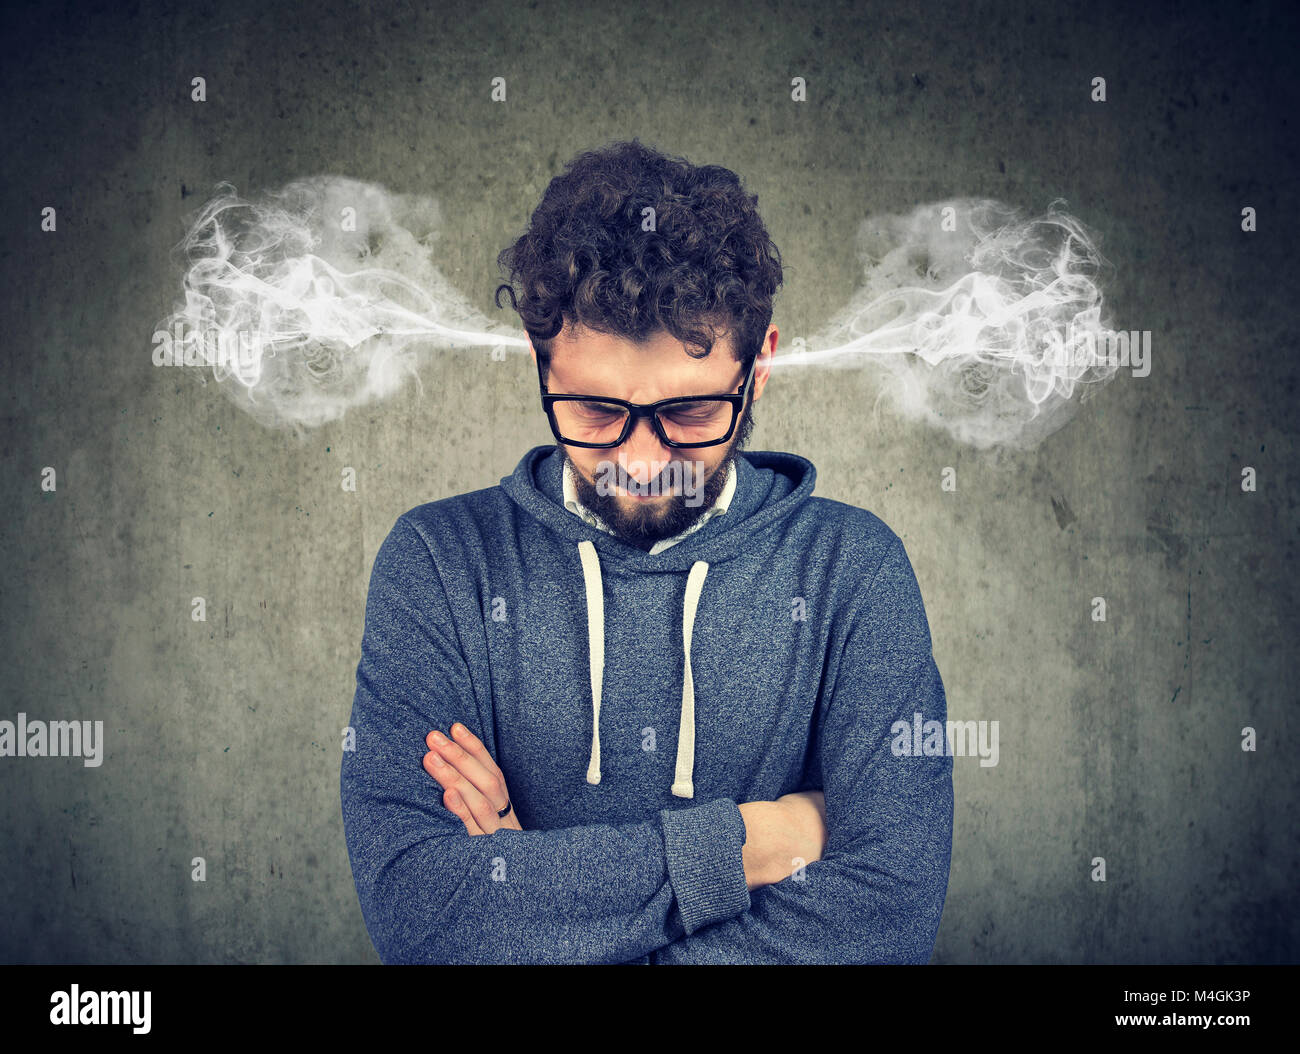 Angry young man, blowing steam coming out of ears, about to have nervous breakdown isolated on gray background. - Stock Image